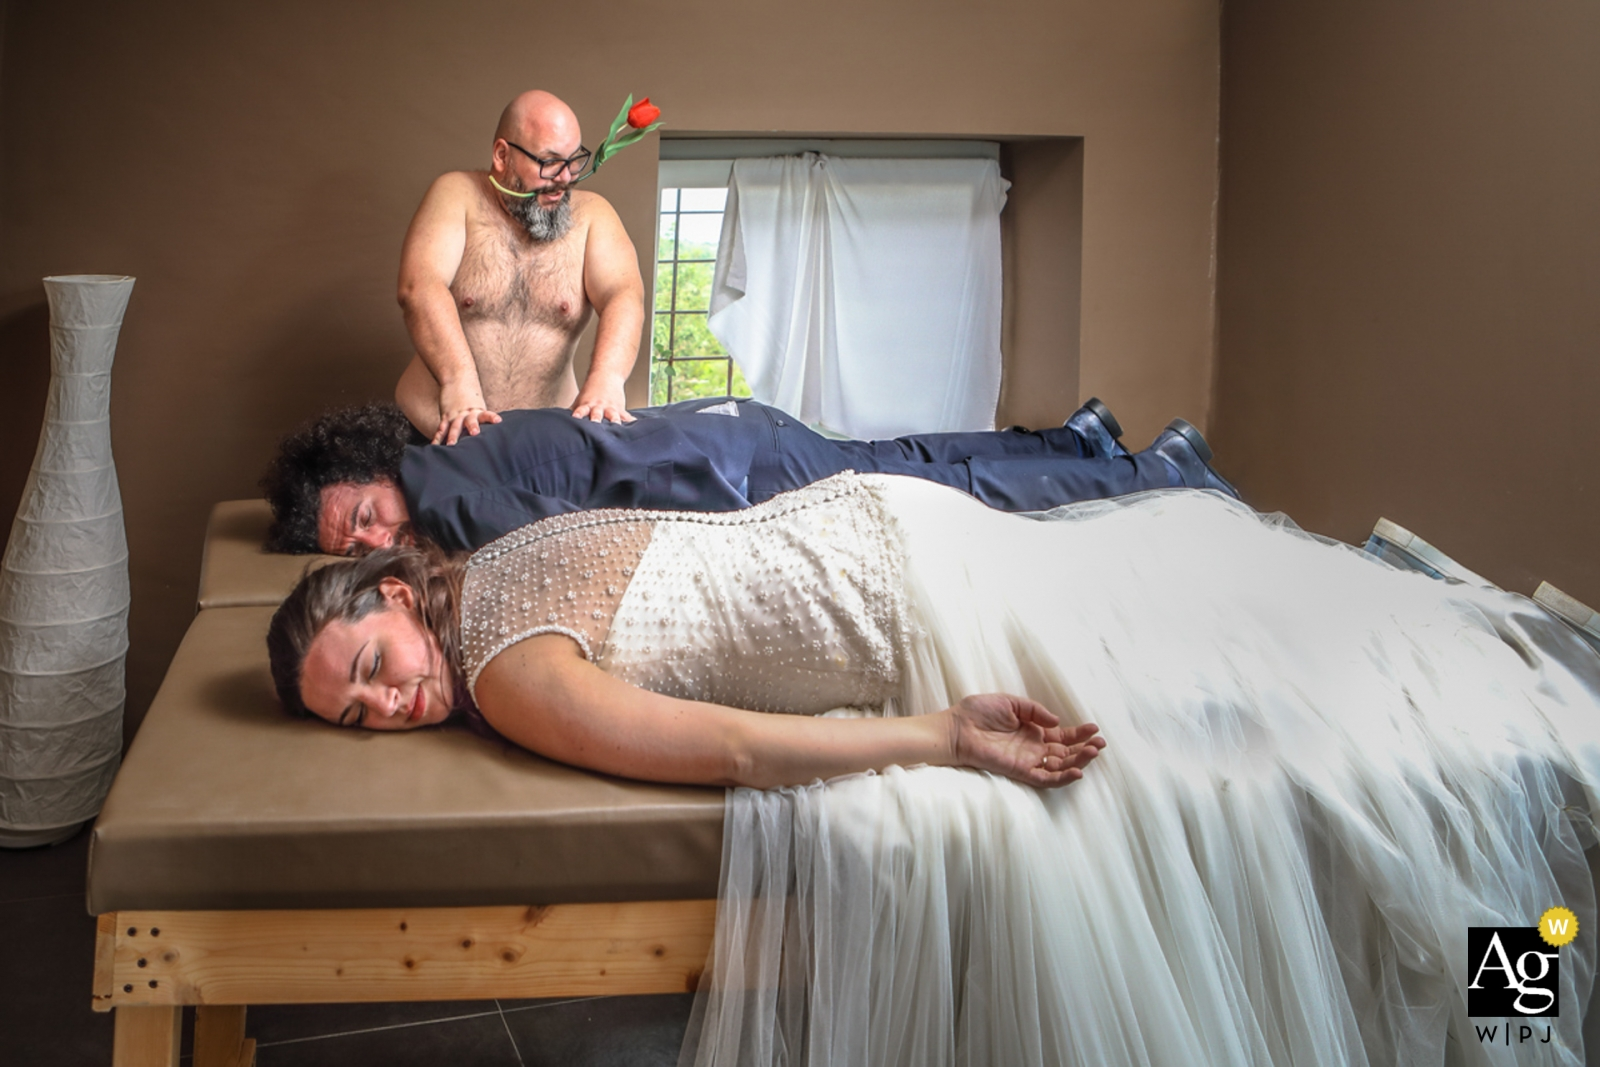 siracusa wedding humor - portrait of bride and groom getting massage.